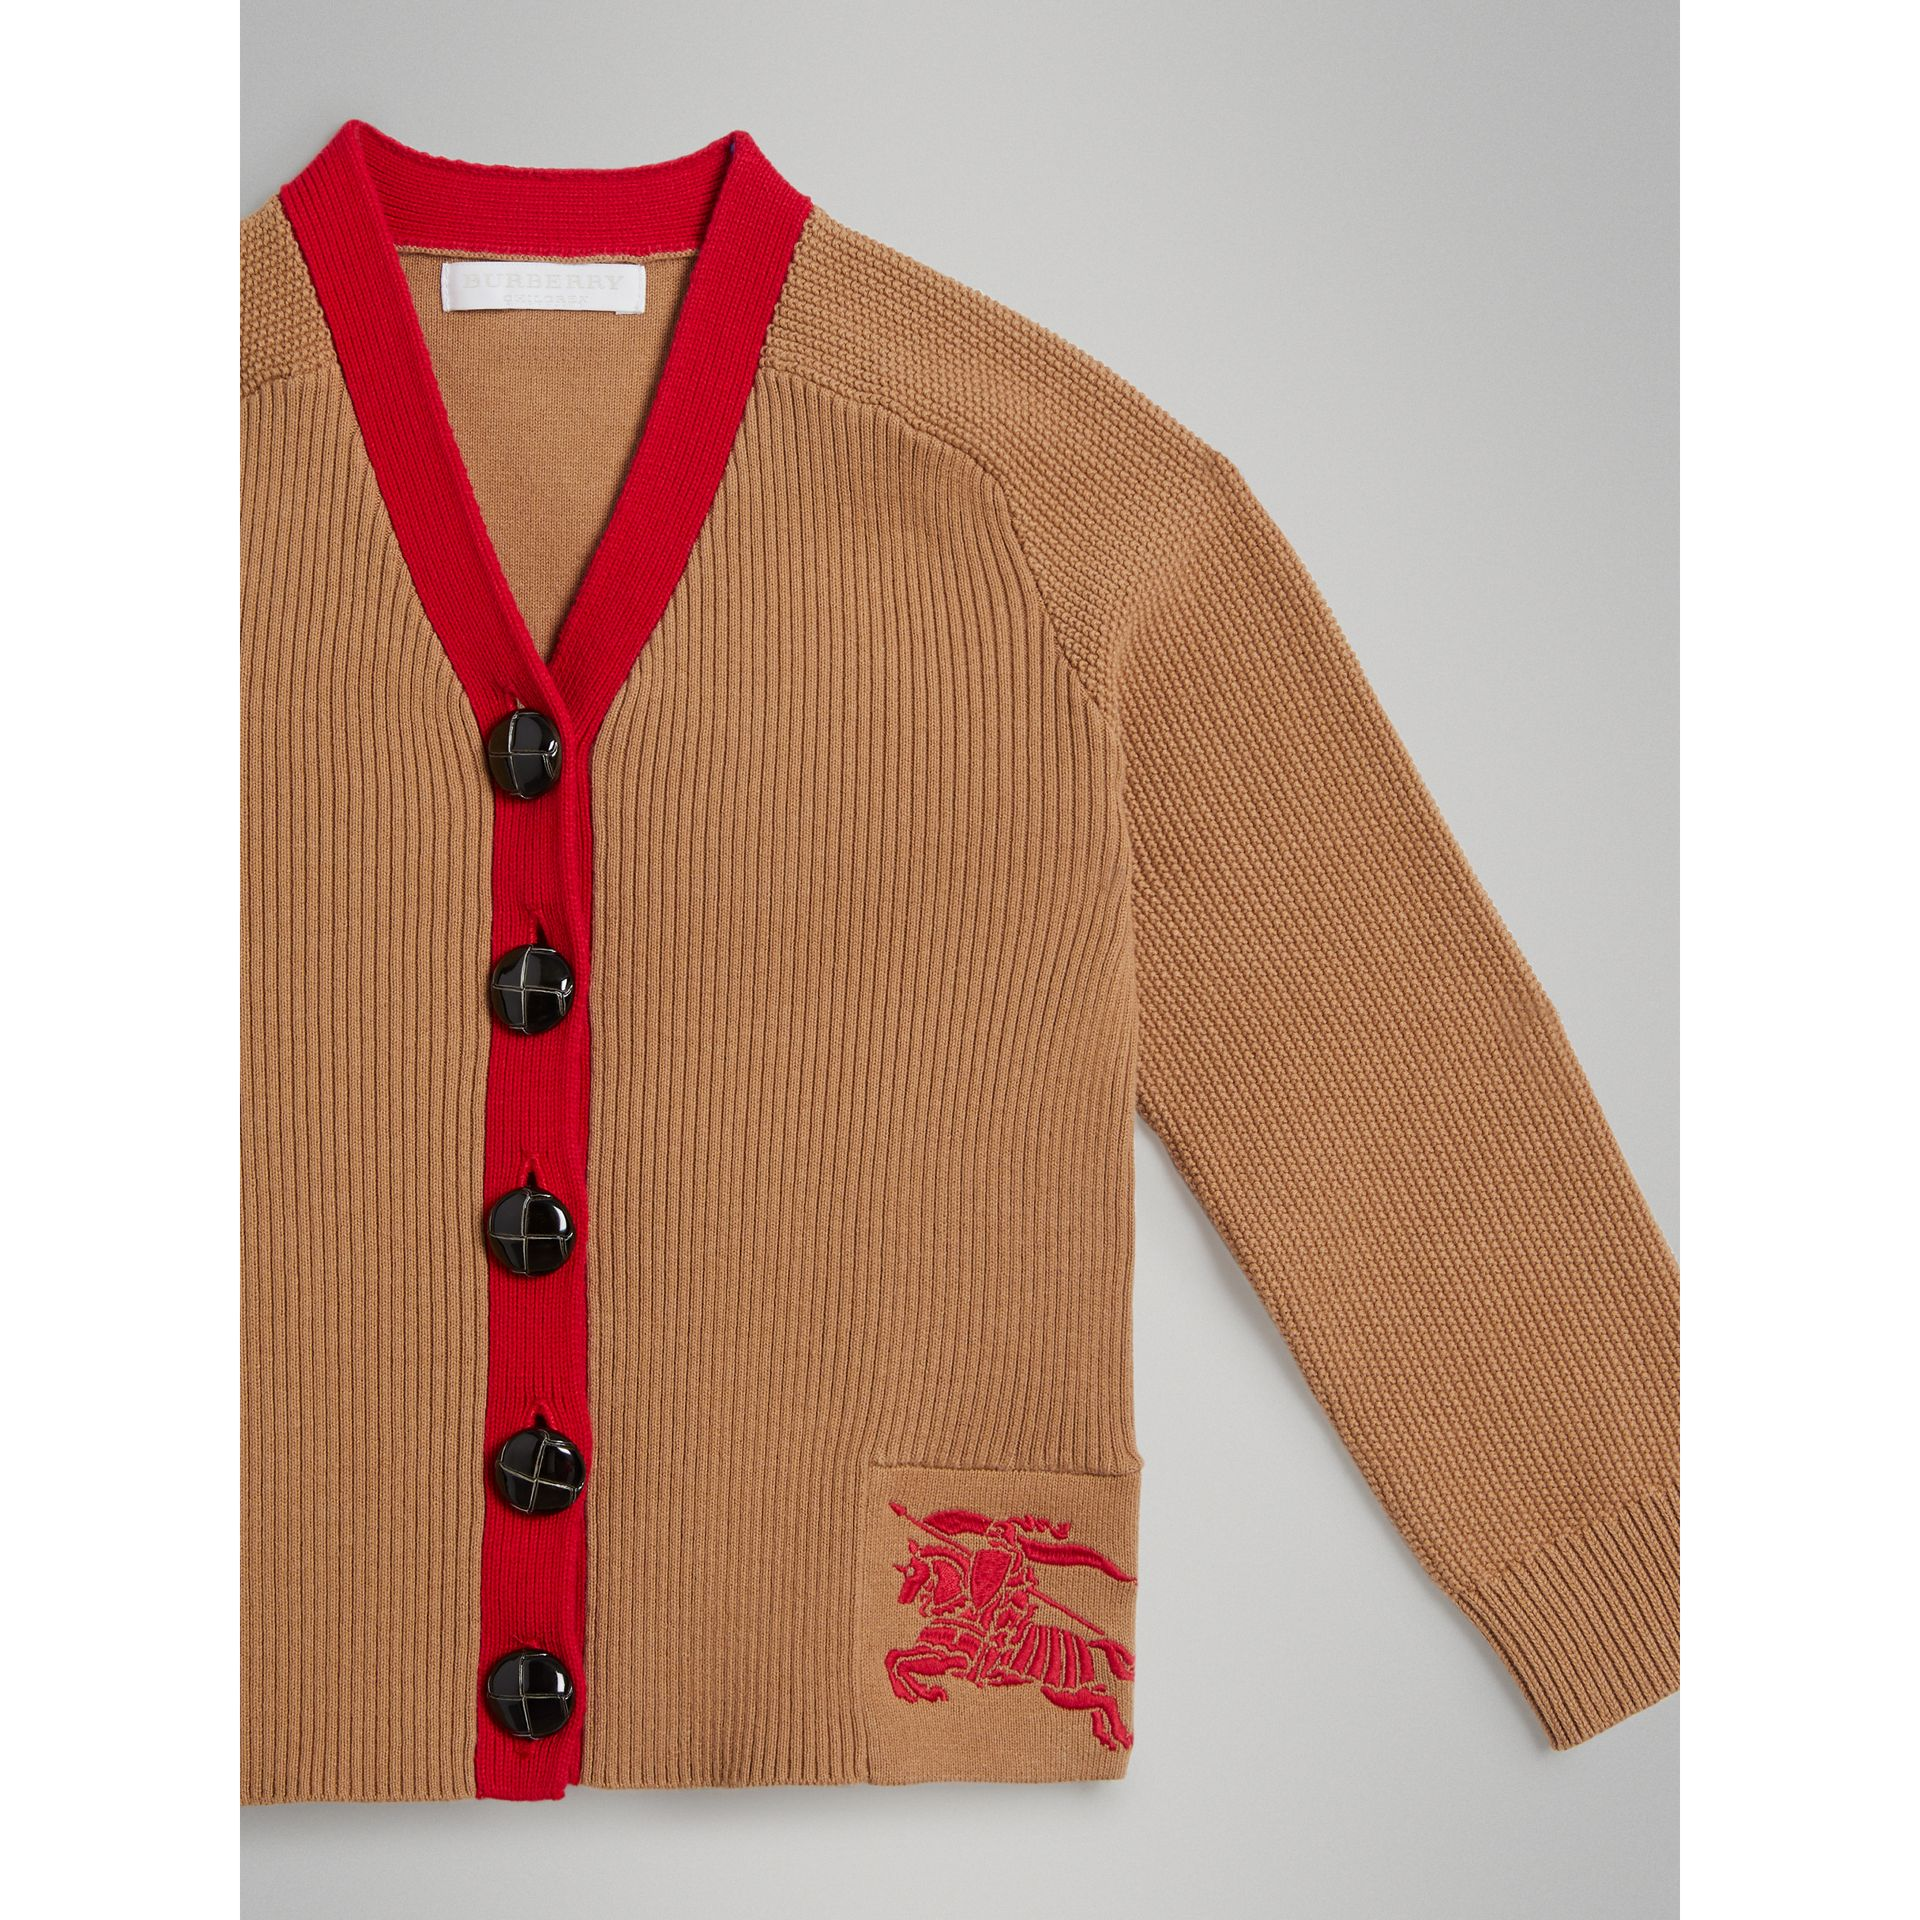 Cardigan en coton bicolore (Camel) | Burberry - photo de la galerie 4